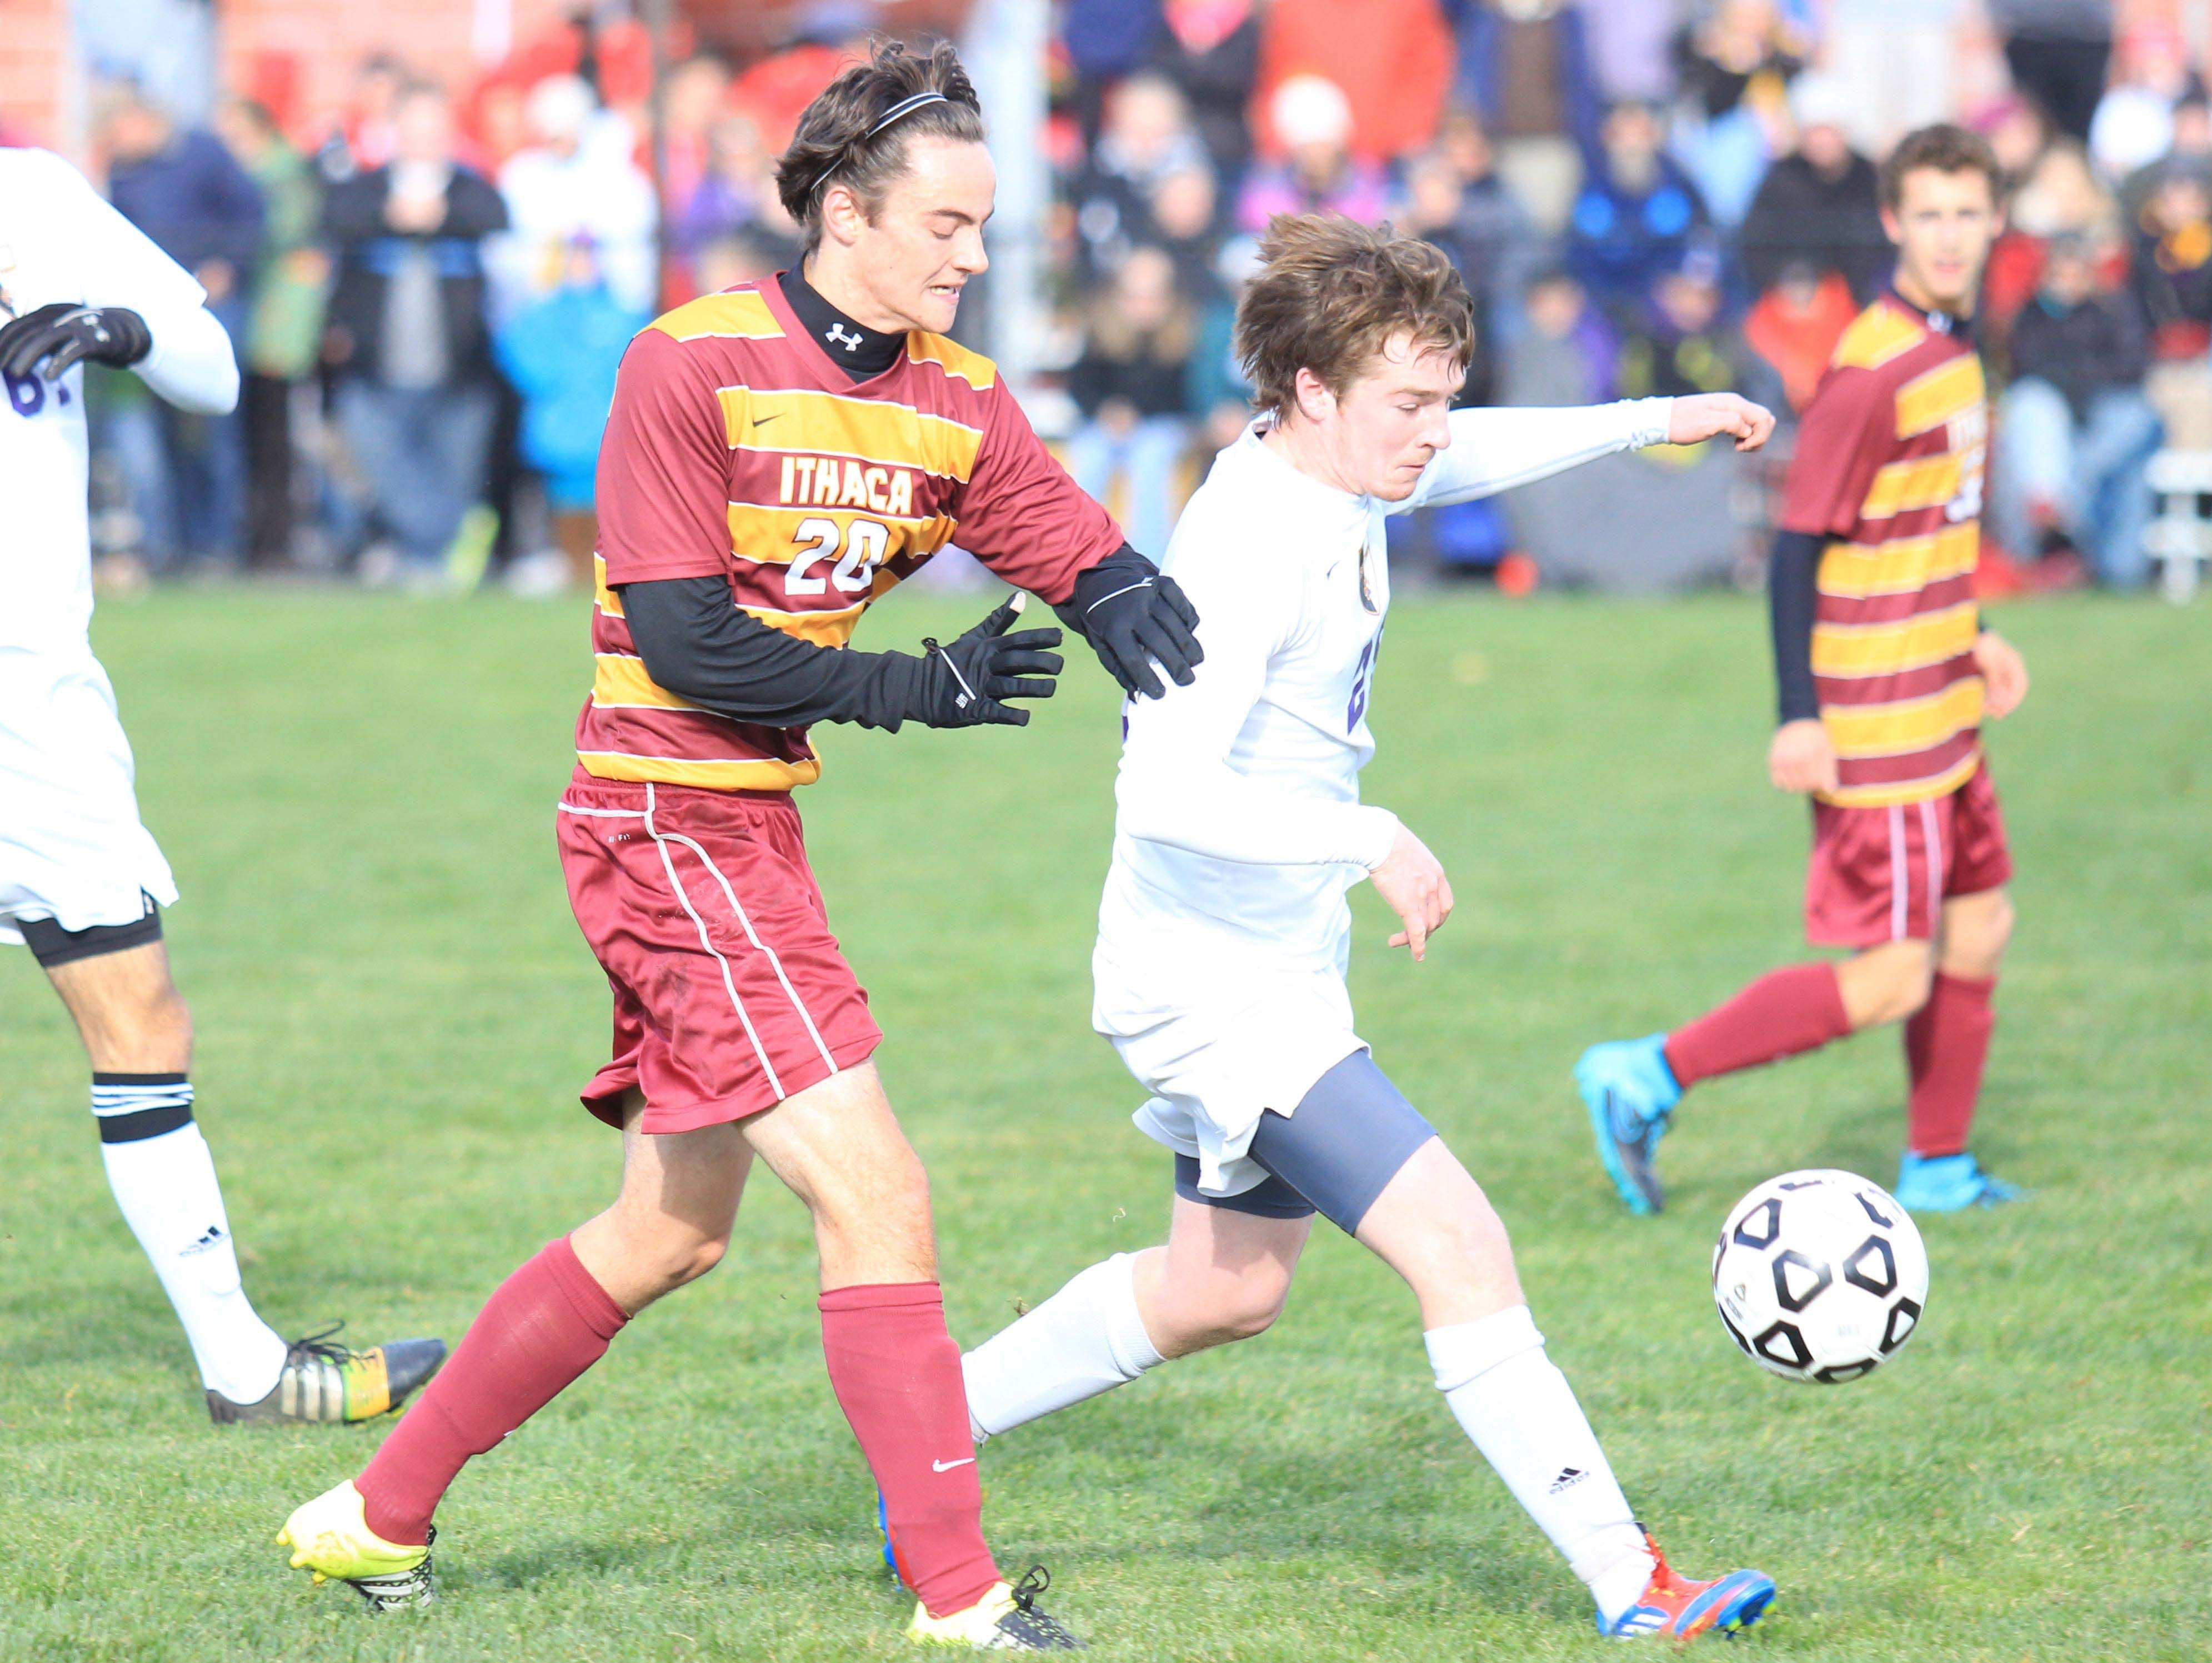 Ithaca's Andrew Araneo (left) battles Ballston Spa defender during NYSPHSAA semi final in Middletown, NY